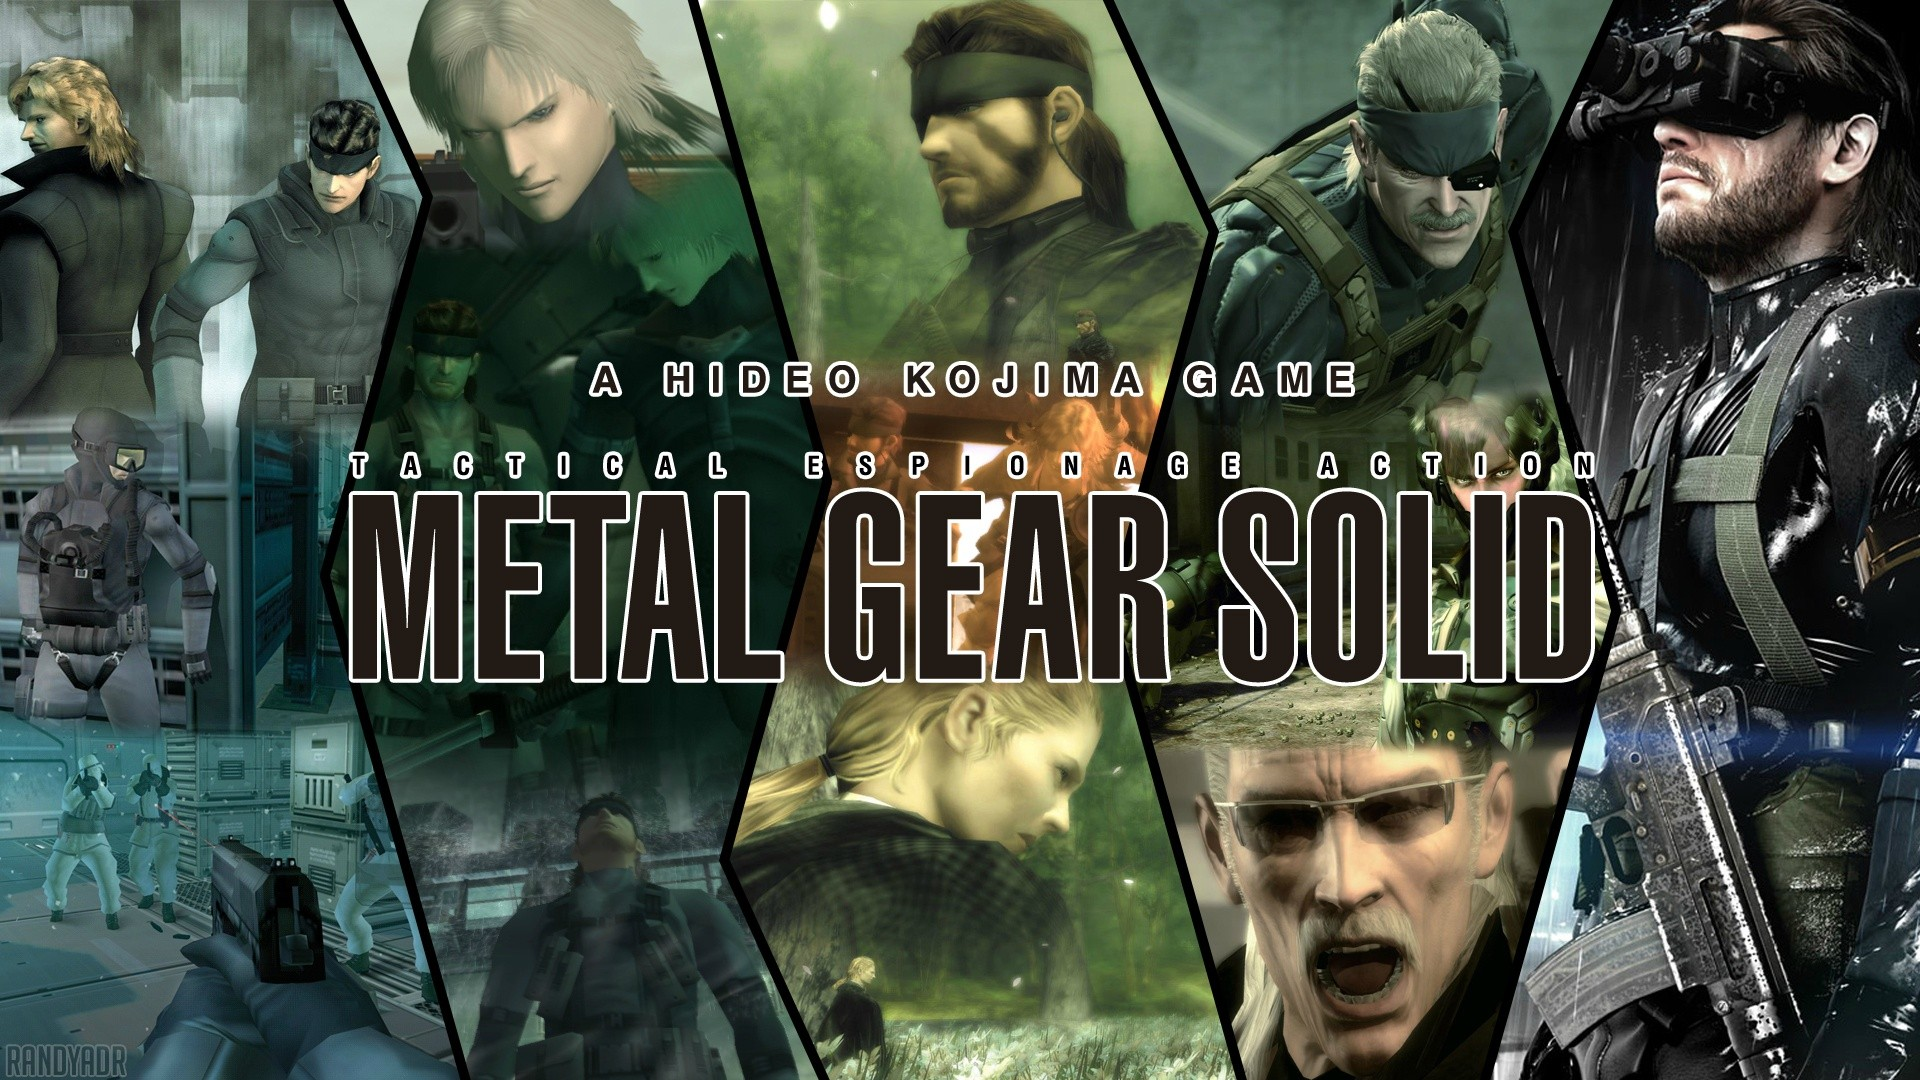 background - Metal Gear Solid V: The Phantom Pain v podaní Brazzers